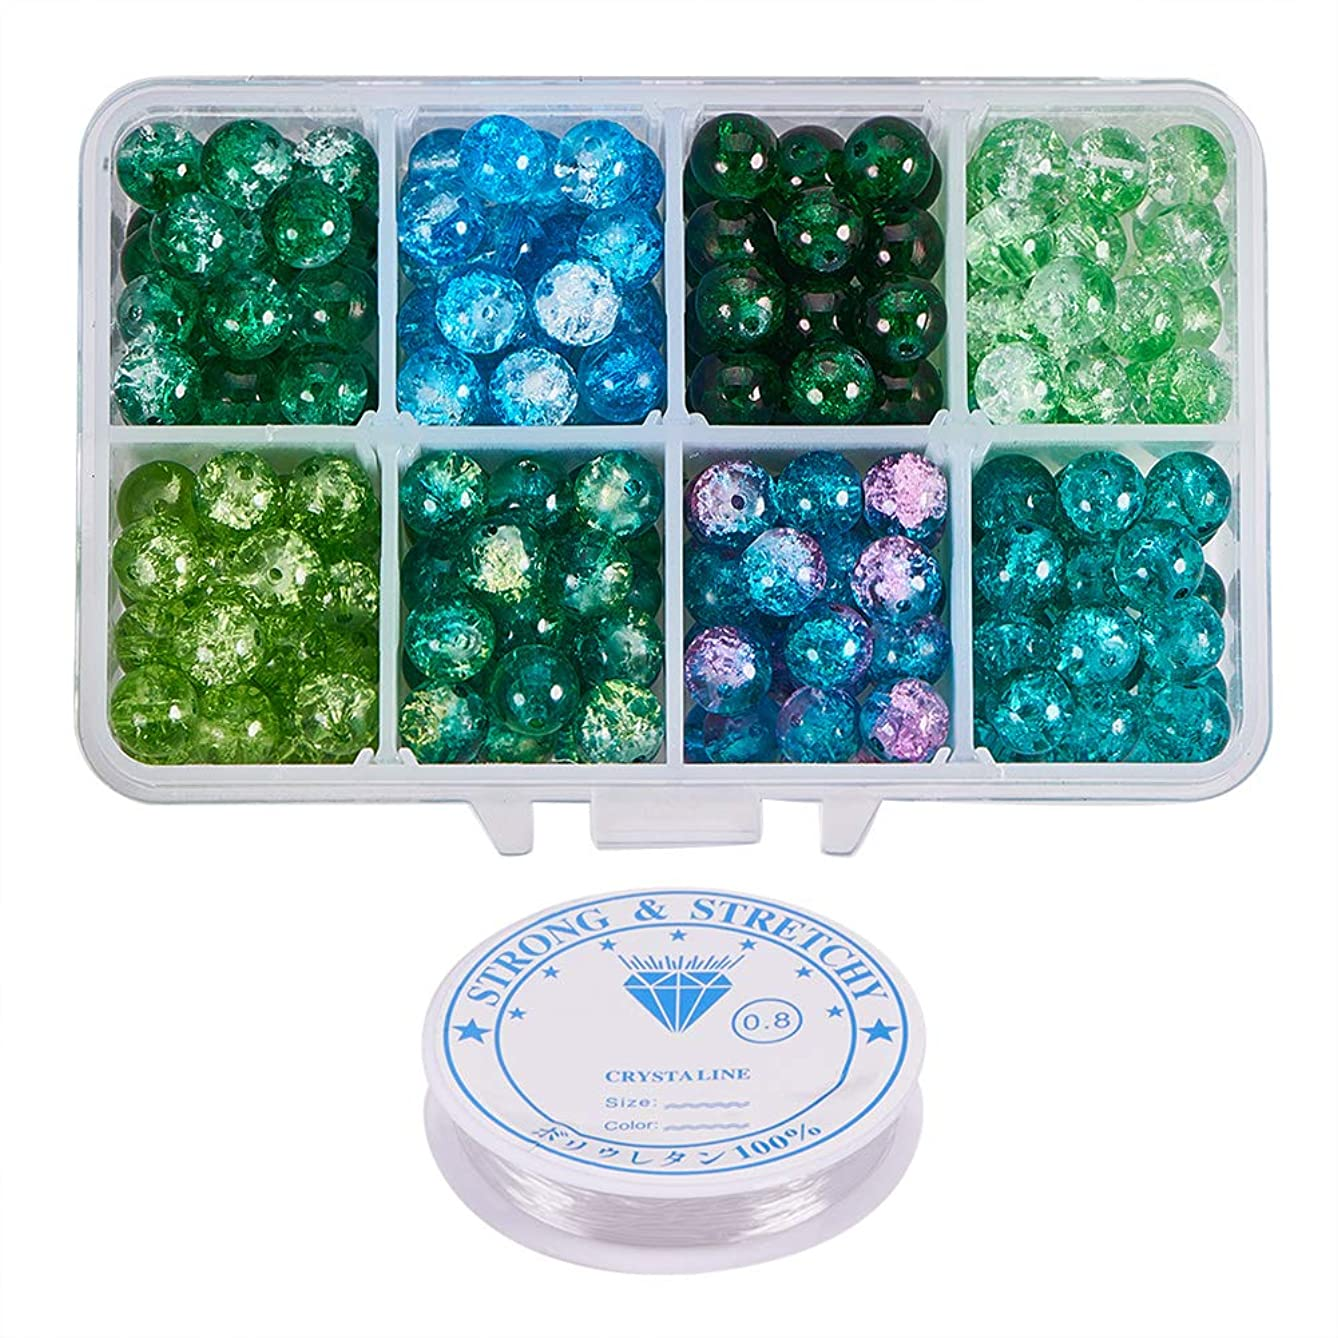 PH PandaHall About 240pcs 8 Color Green Series 8mm Handcrafted Crackle Baking Painted Glass Beads Assortment Lot with Crystal Elastic Thread for Jewelry Making (0.8mm; 5m/roll)